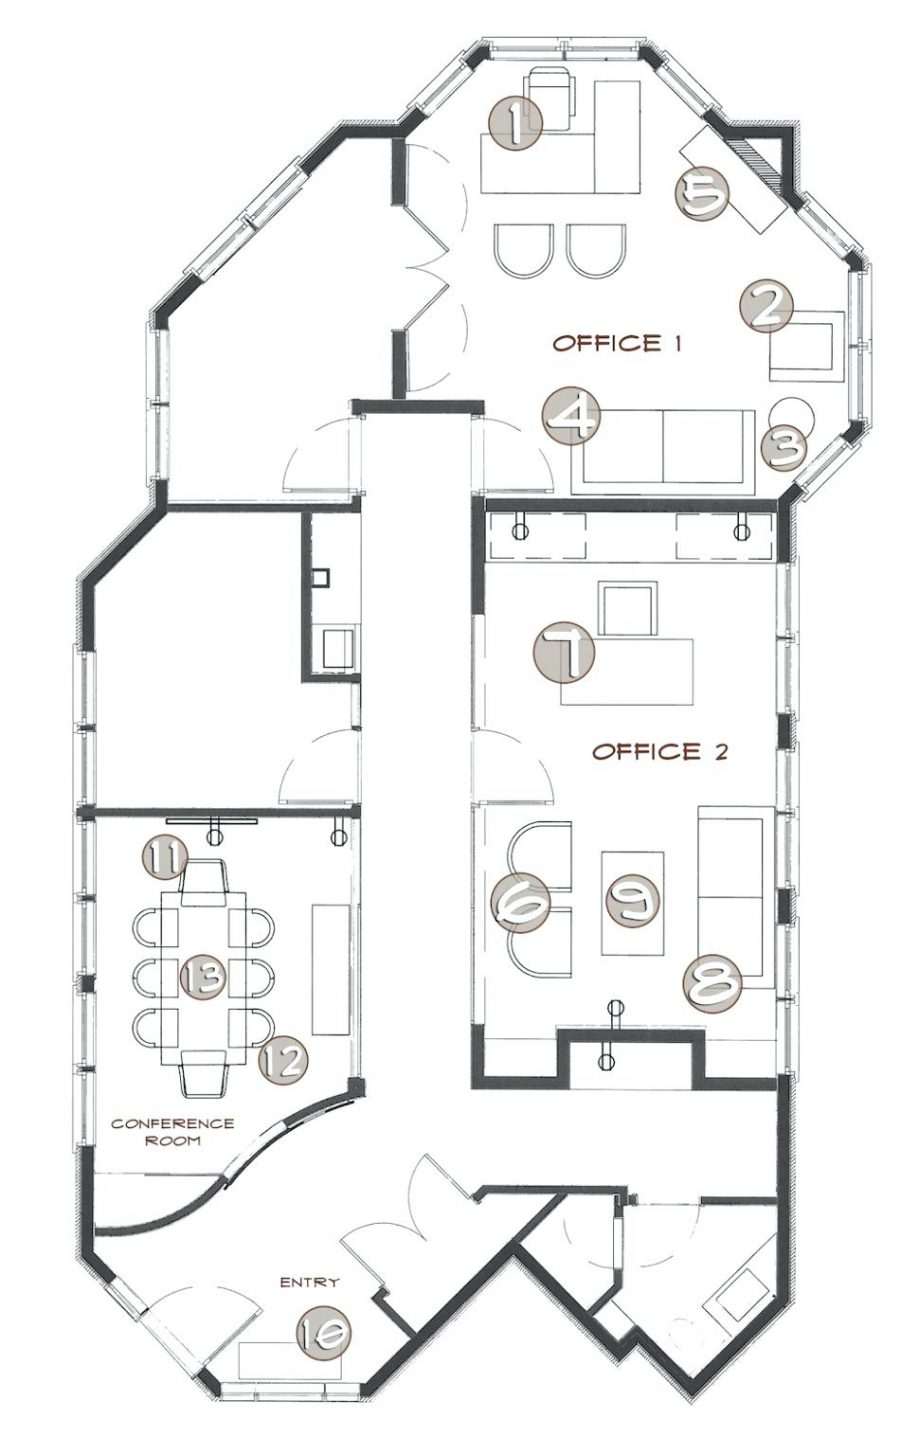 office building drawing at getdrawings com